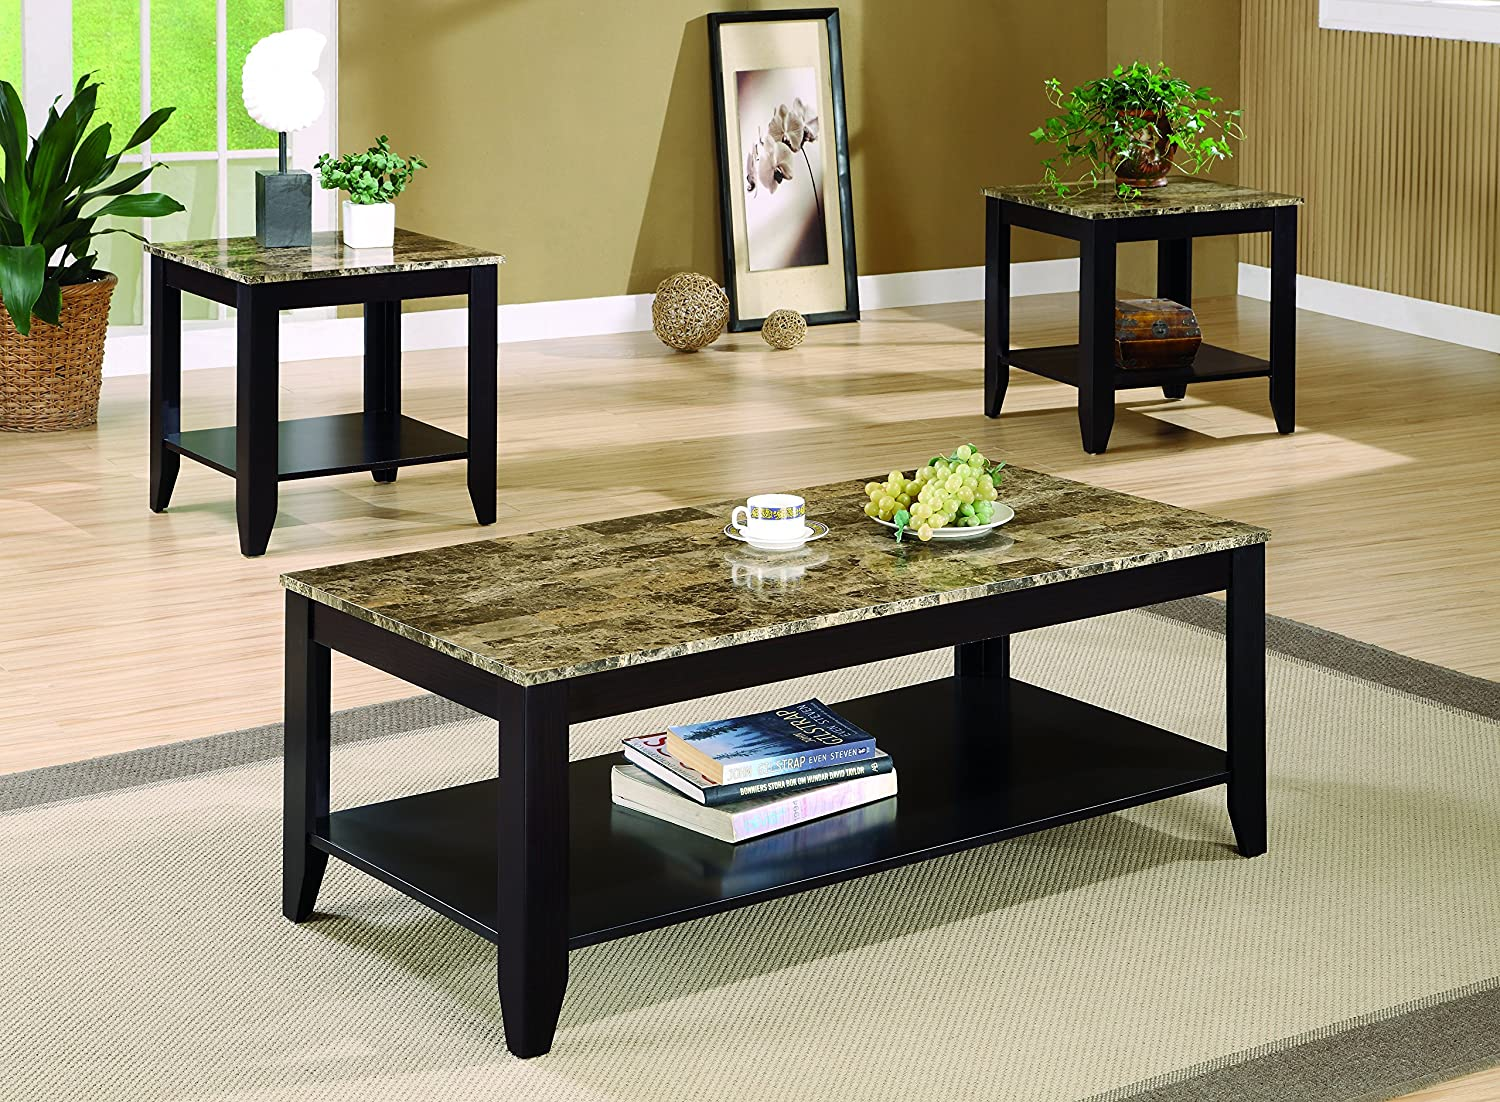 Coaster Home Furnishings 3-piece Occasional Table Set with Shelf and Marble Look Top Cappuccino 700155